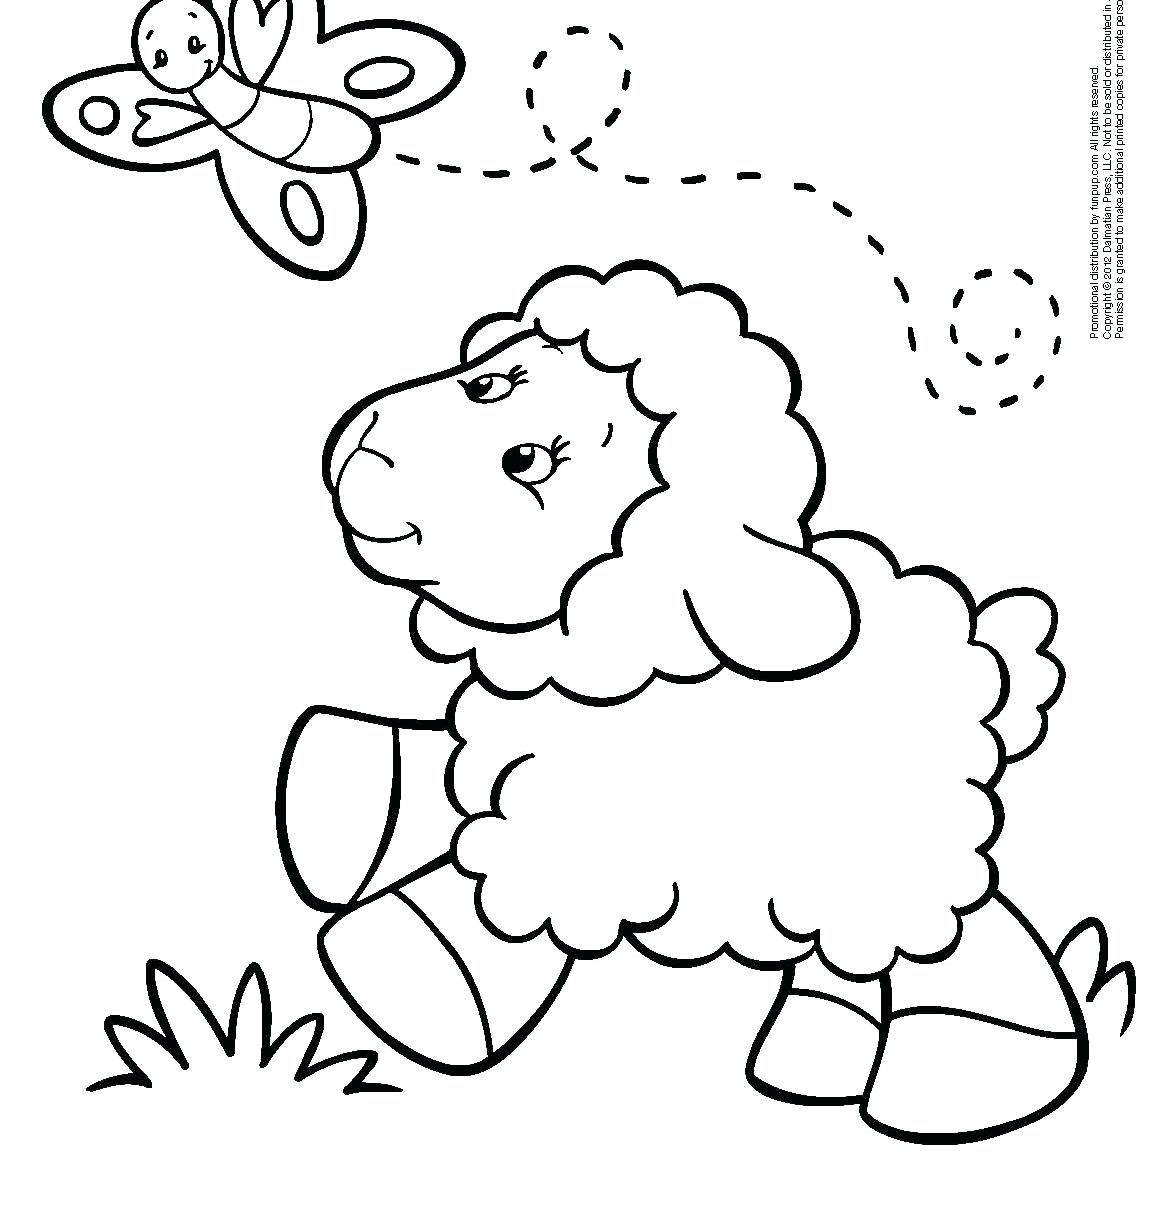 1163x1224 Coloring Lion And Lamb Coloring Pages